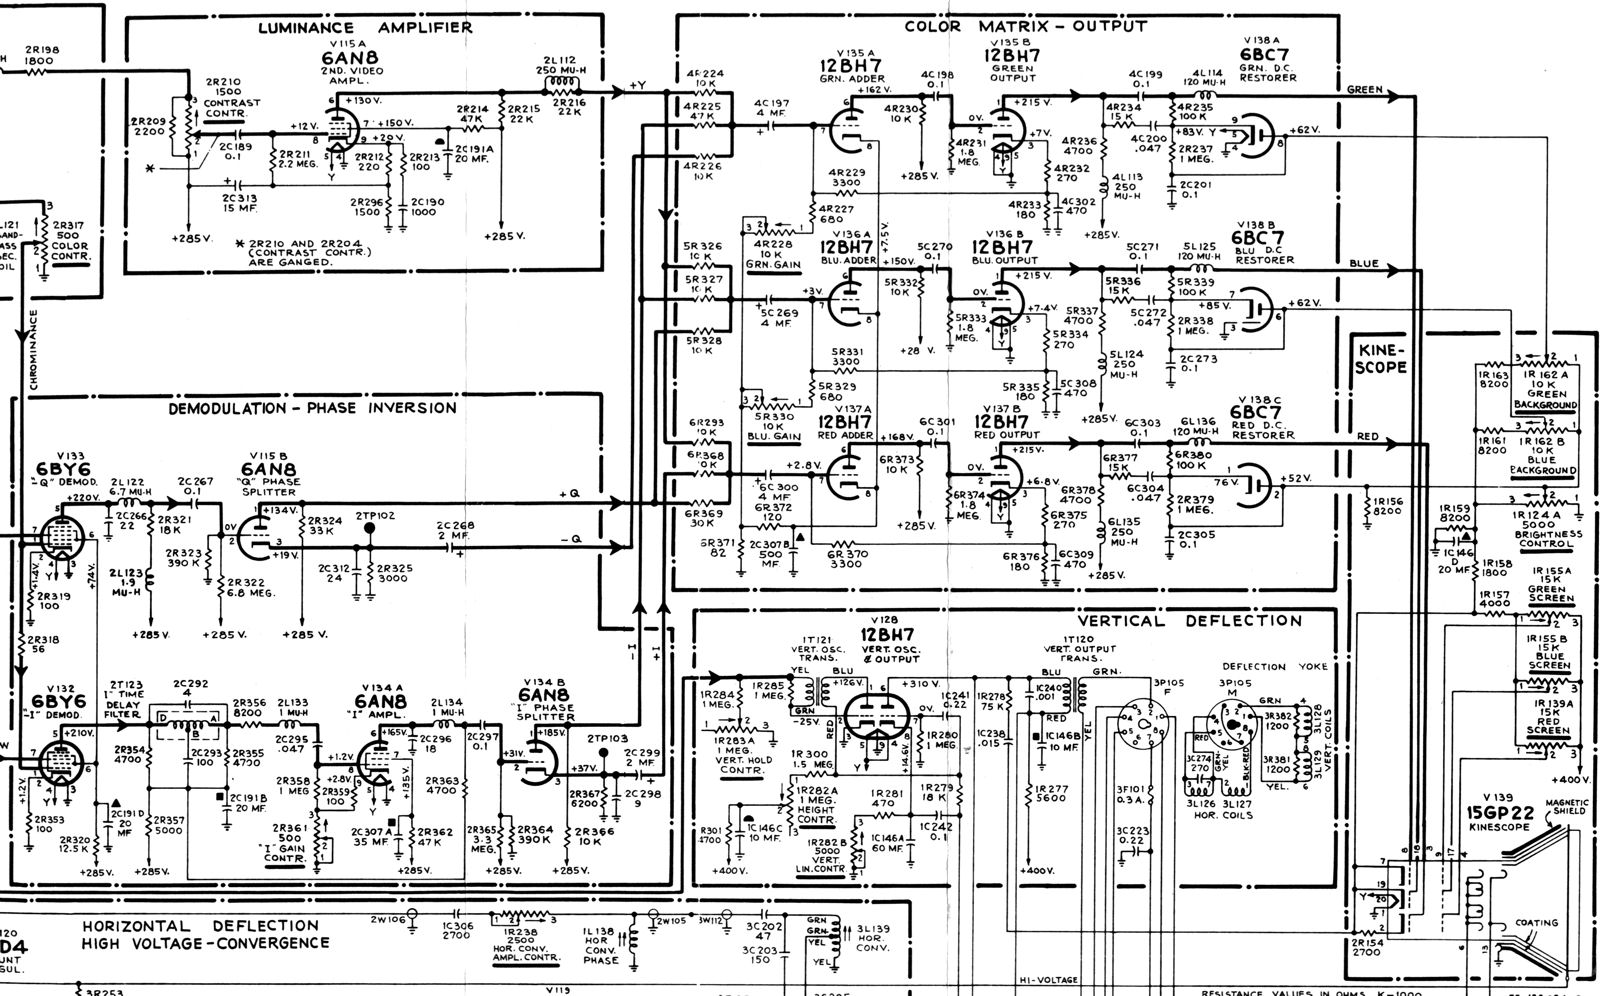 tv schematic diagrams wiring diagram now rh 11 asxcv madeagleband de toshiba 23pb200 specification led tv schematic diagram